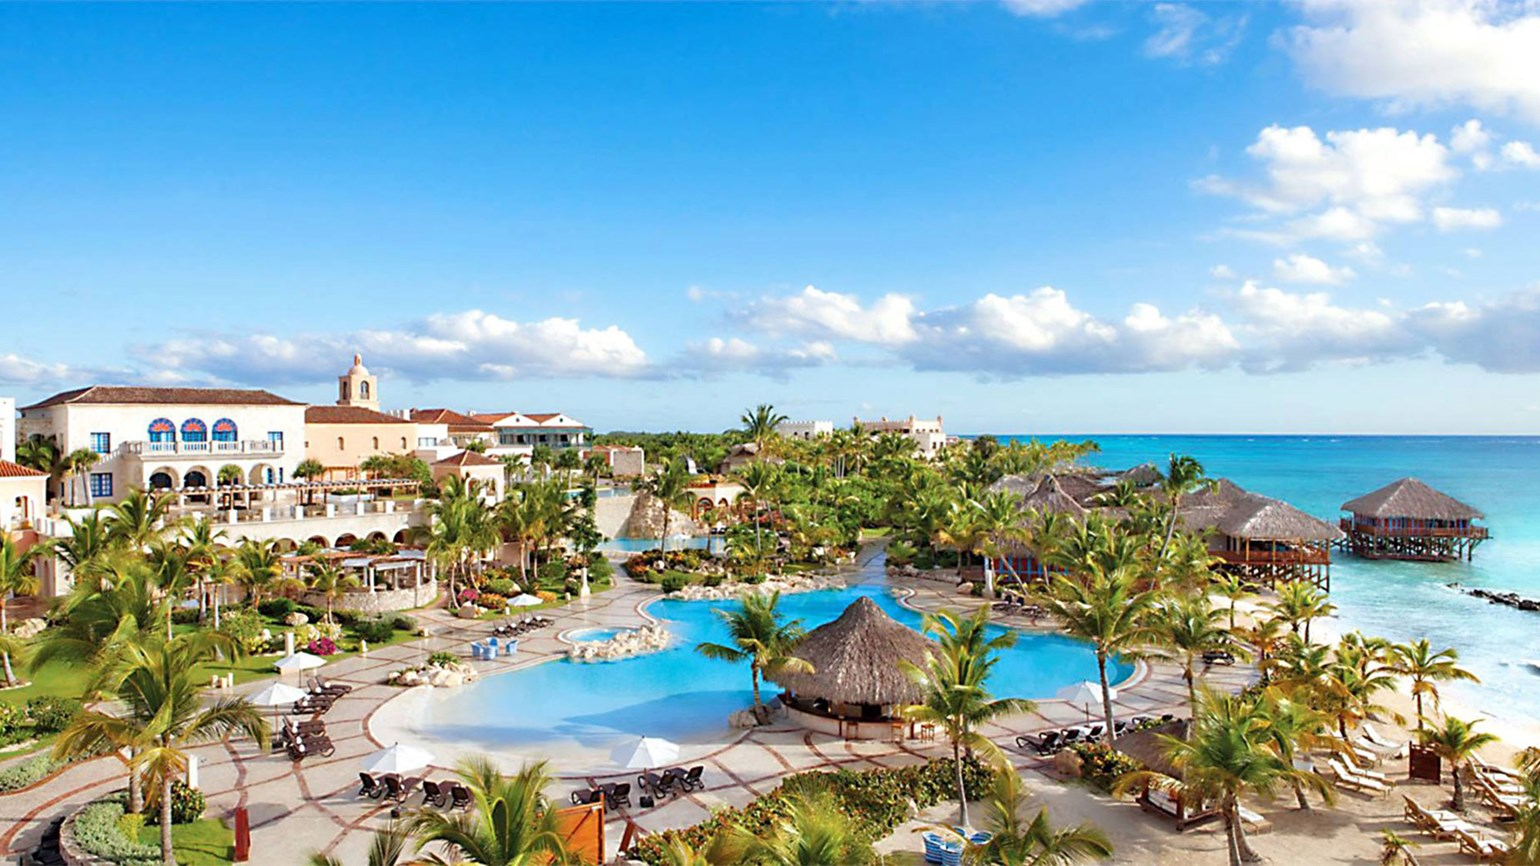 Playa Hotels Adds Sanctuary Cap Cana To Portfolio